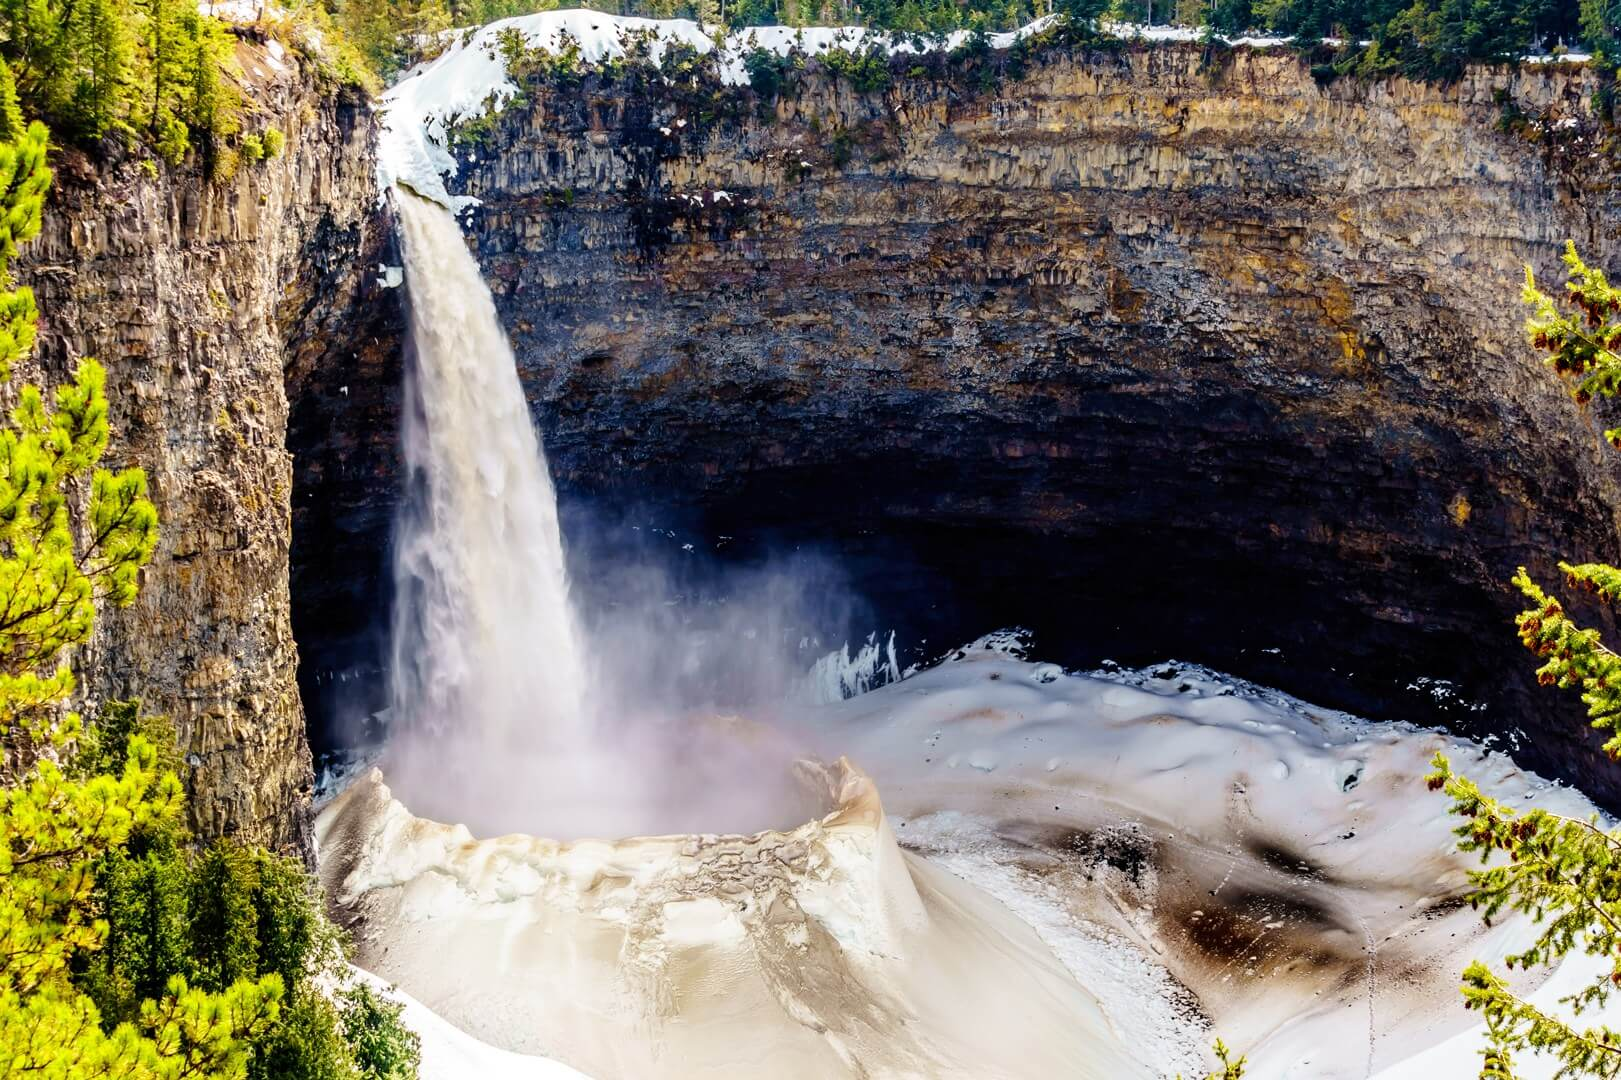 Helmcken Falls in BC Canada is one of the most beautiful waterfalls in the world